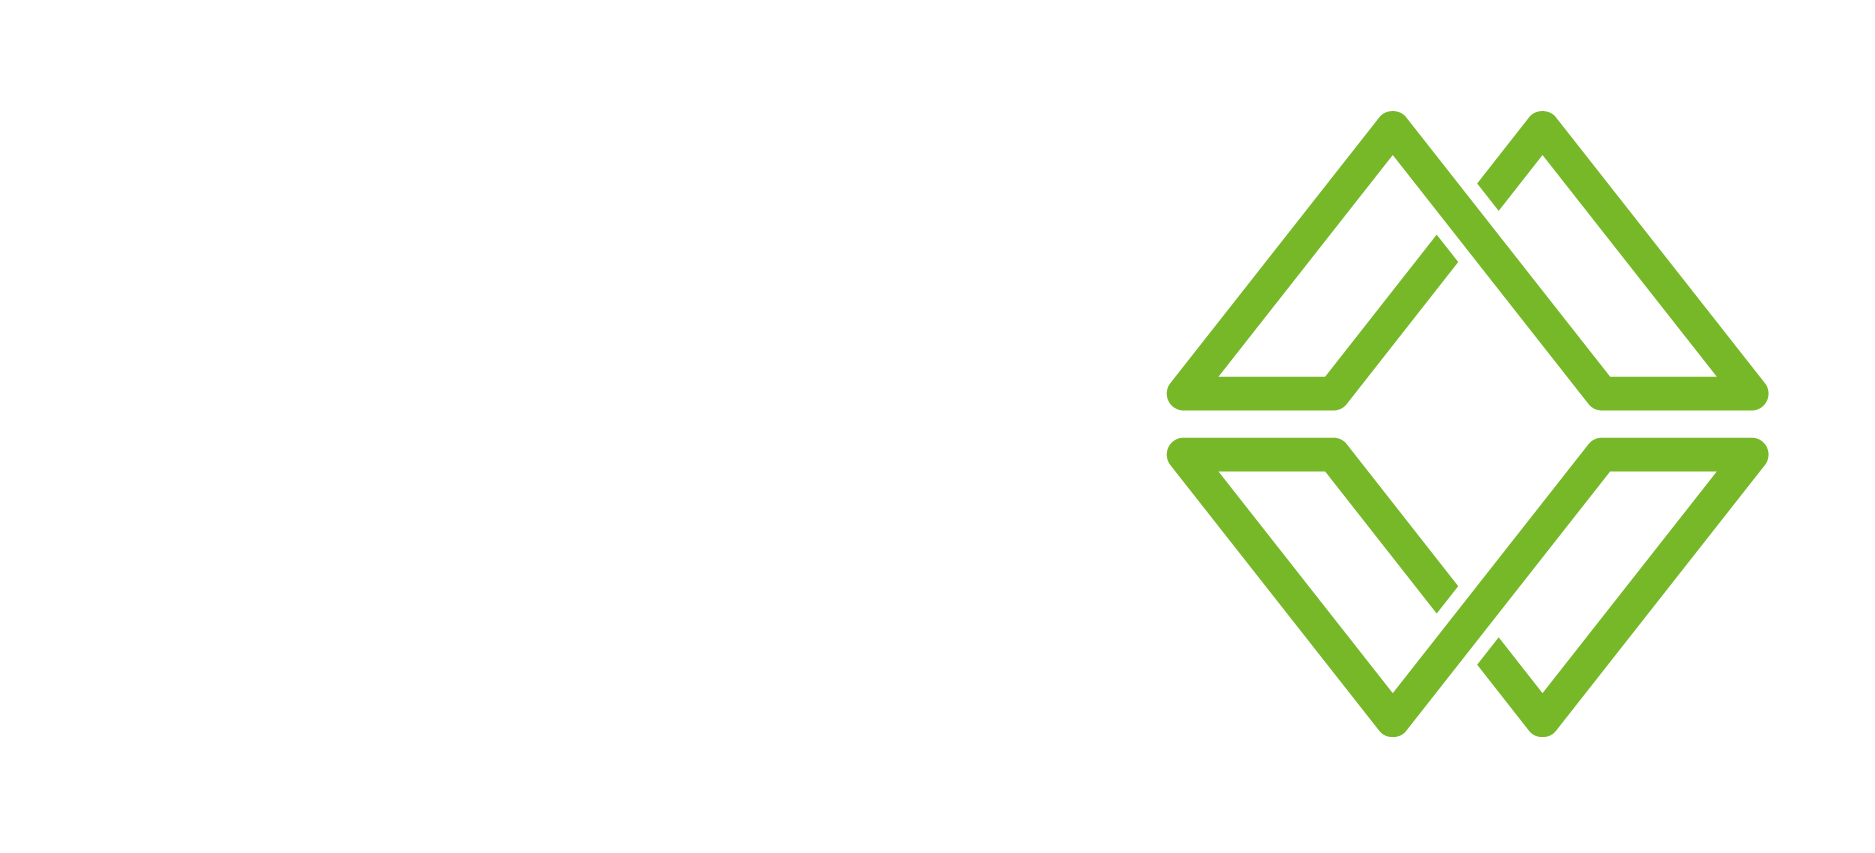 WML-Logo-Horiz-GreyBG Consulting Engineers-01-01